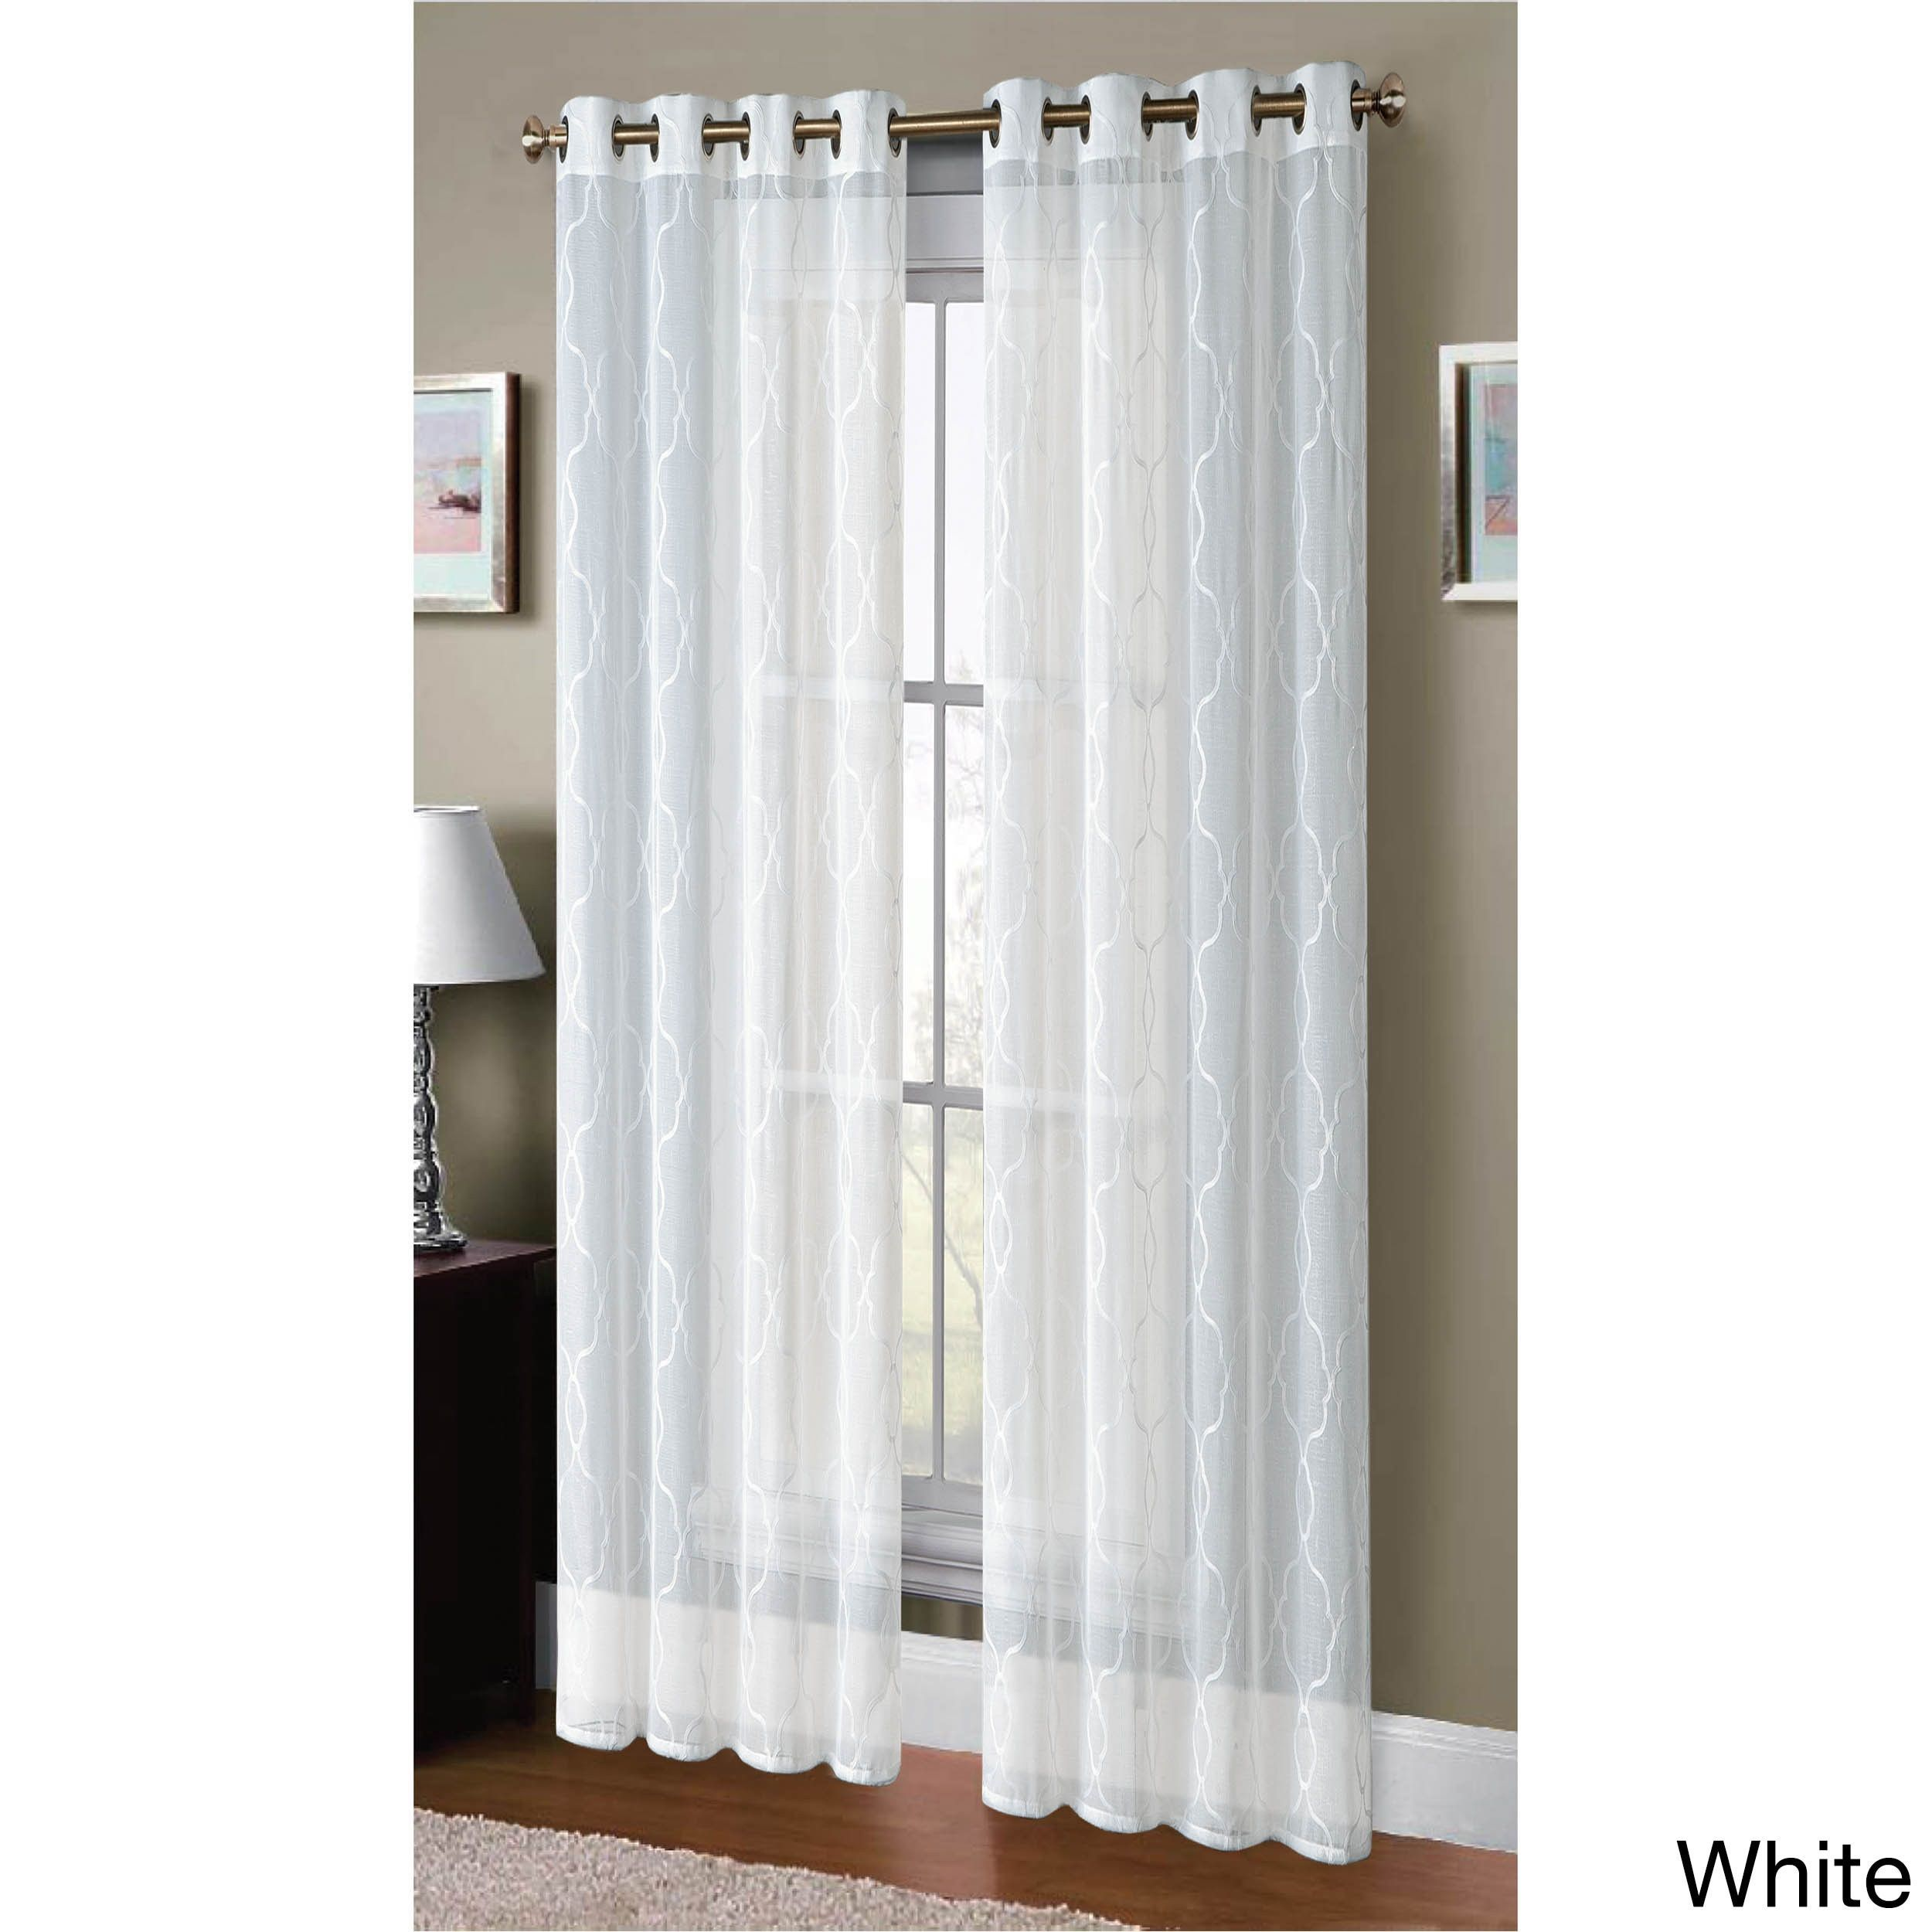 Window Elements Boho Embroidered Faux Linen Sheer 96 Inch Extra Wide Grommet Curtain Panel Pair Taupe Grommet Curtains Sheer Linen Curtains Panel Curtains